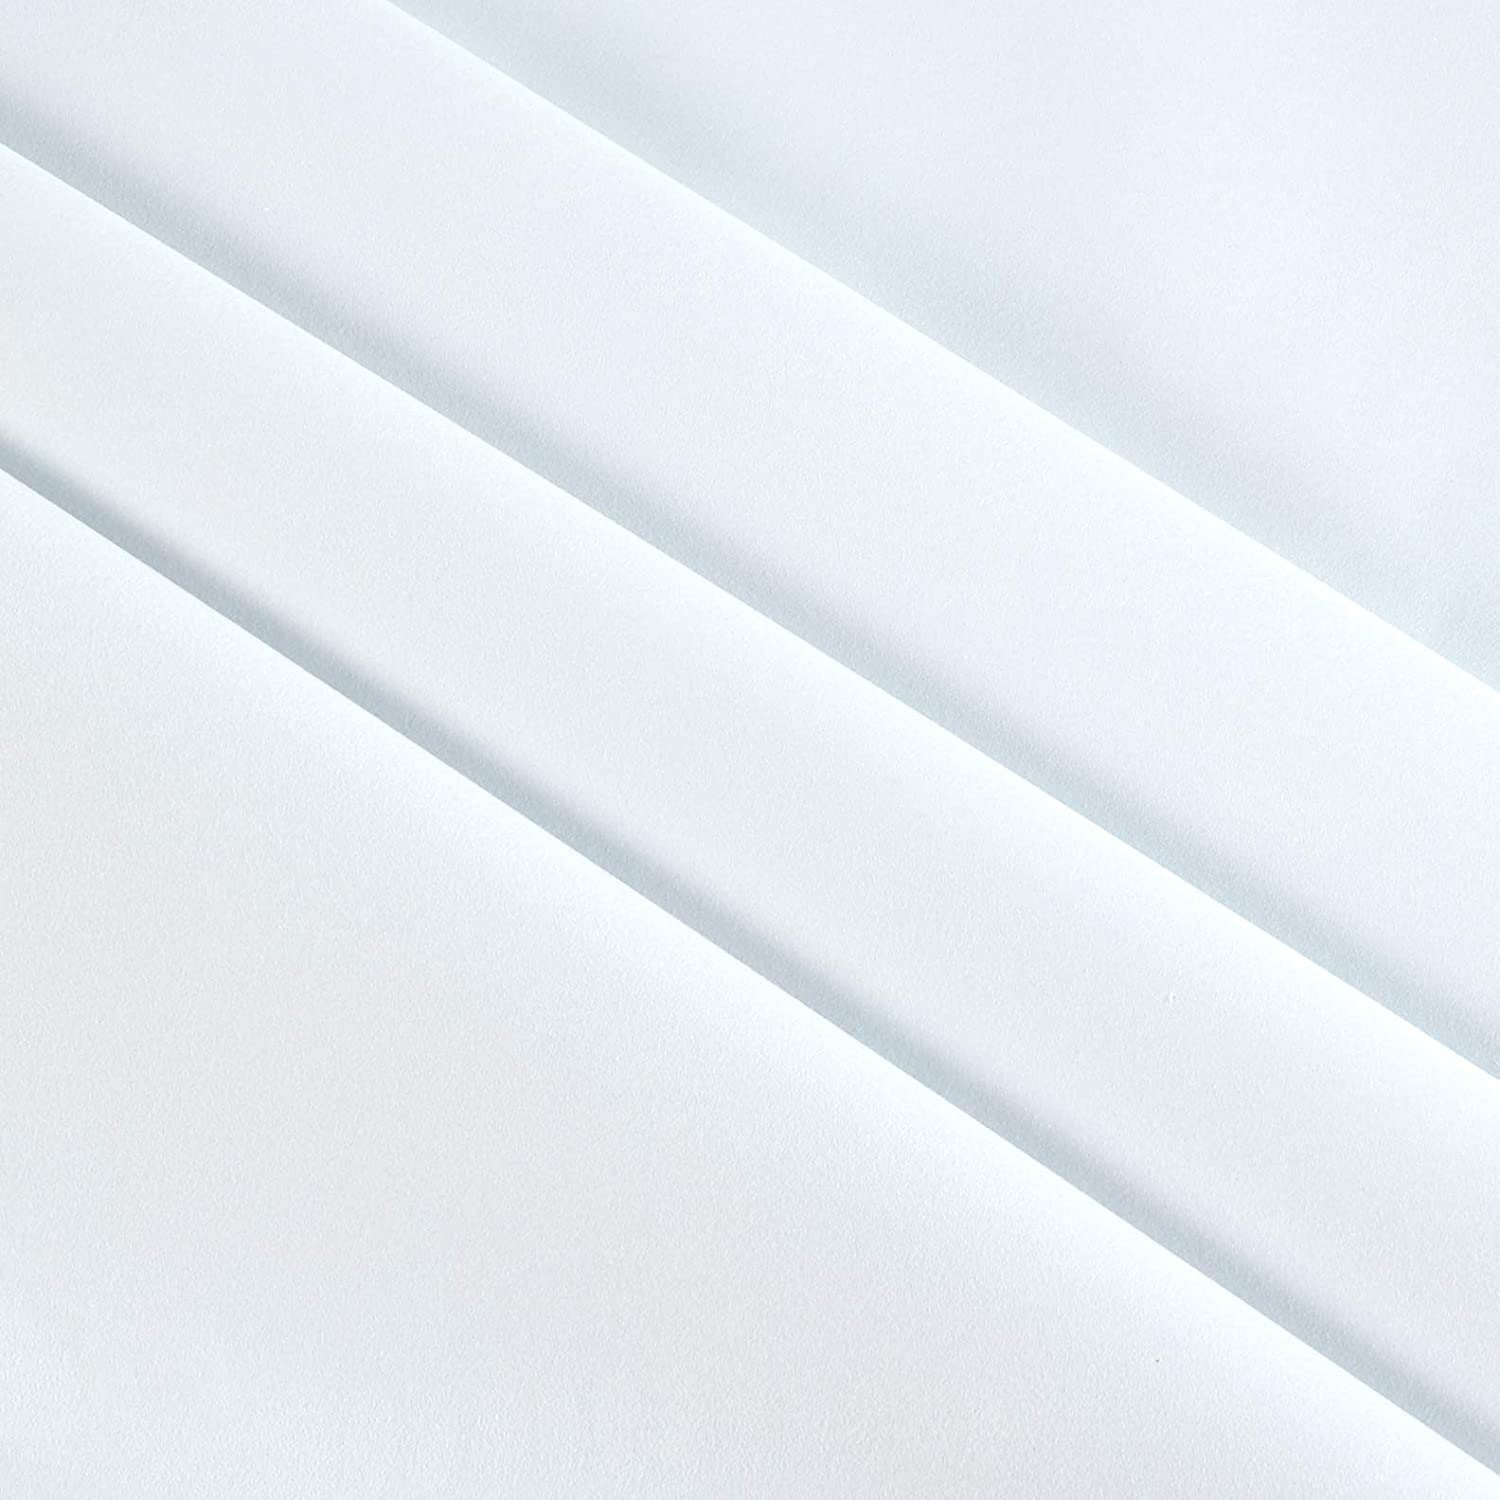 Hanes Drapery Lining Blackout Eclipse Fabric Fabric by the yard Ivory